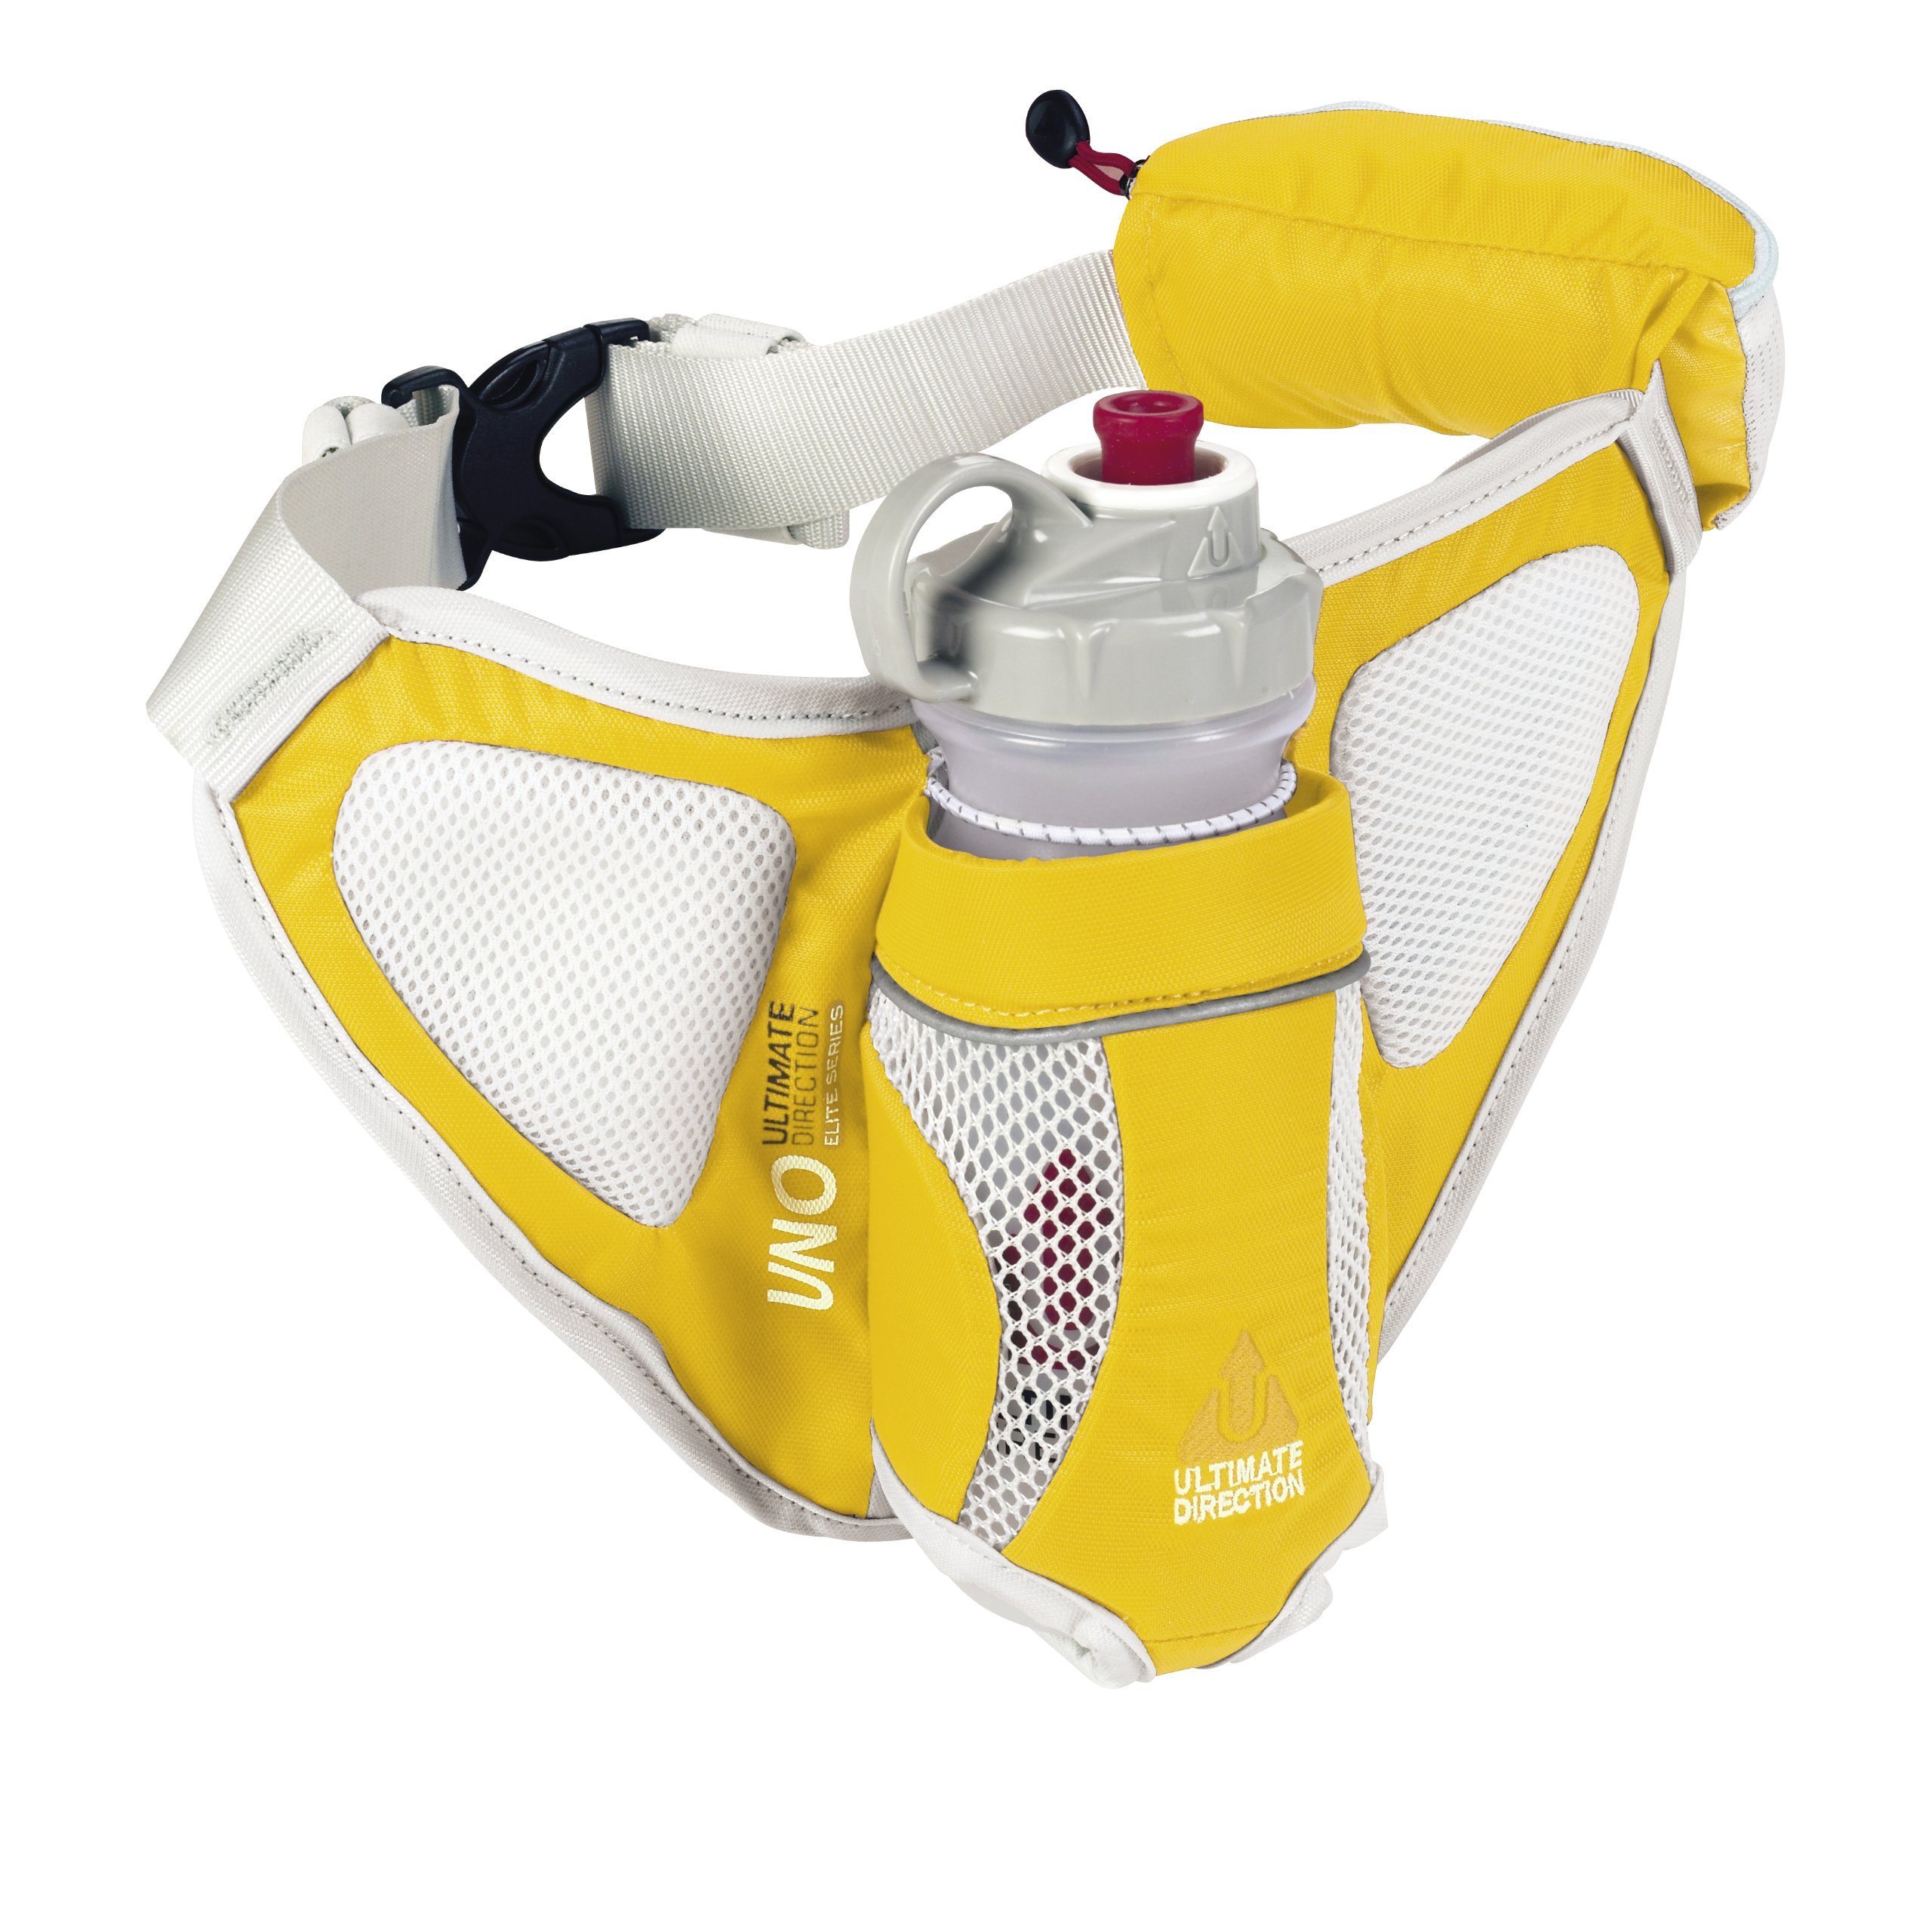 Ultimate Direction Uno Airflow Waistepack, Spectra